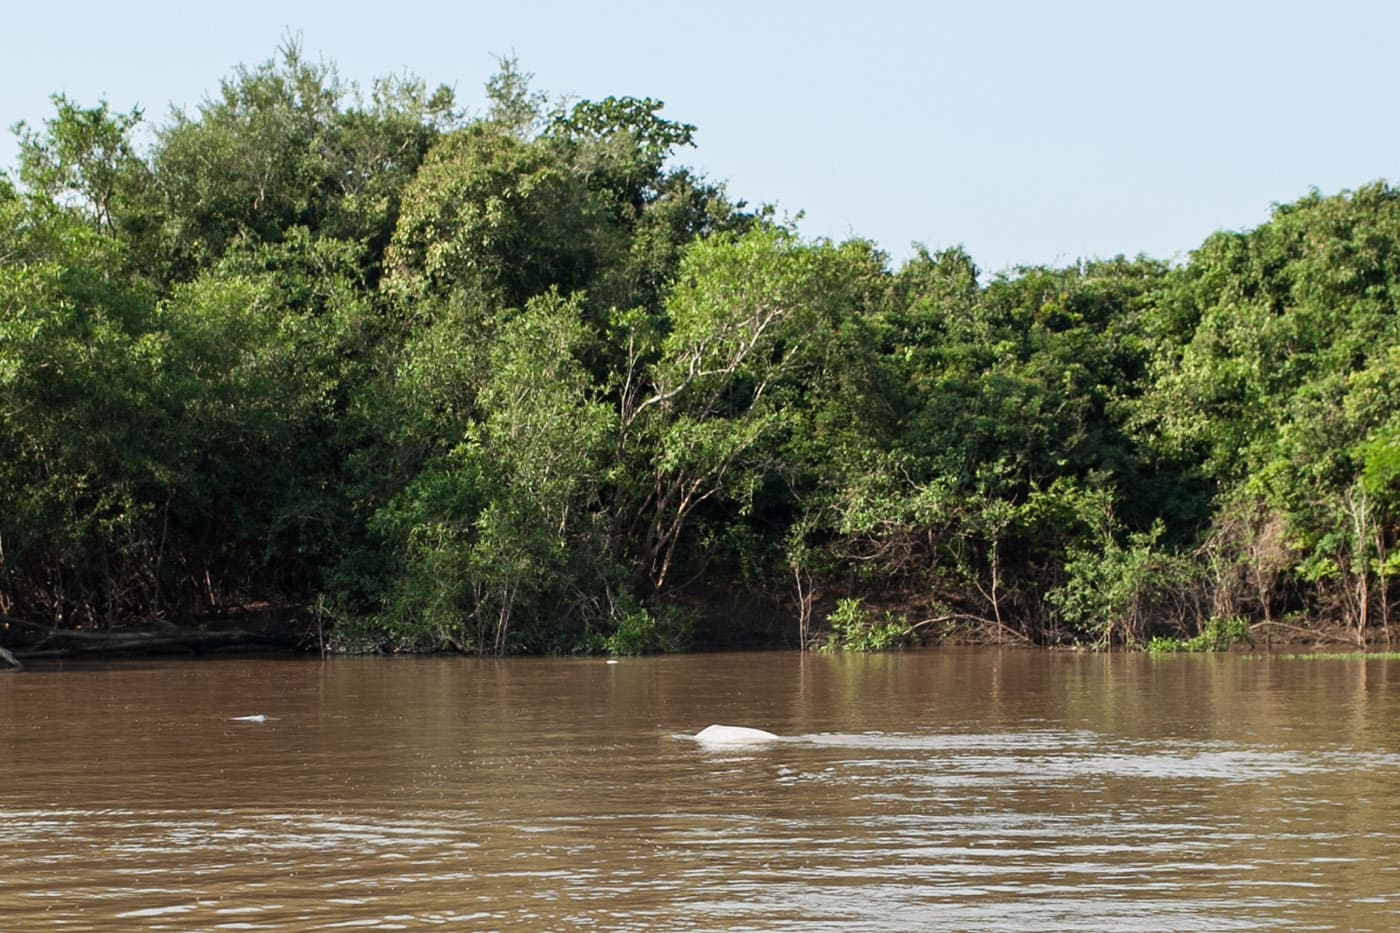 Dolphin - The Pampas in the Bolivian Amazon